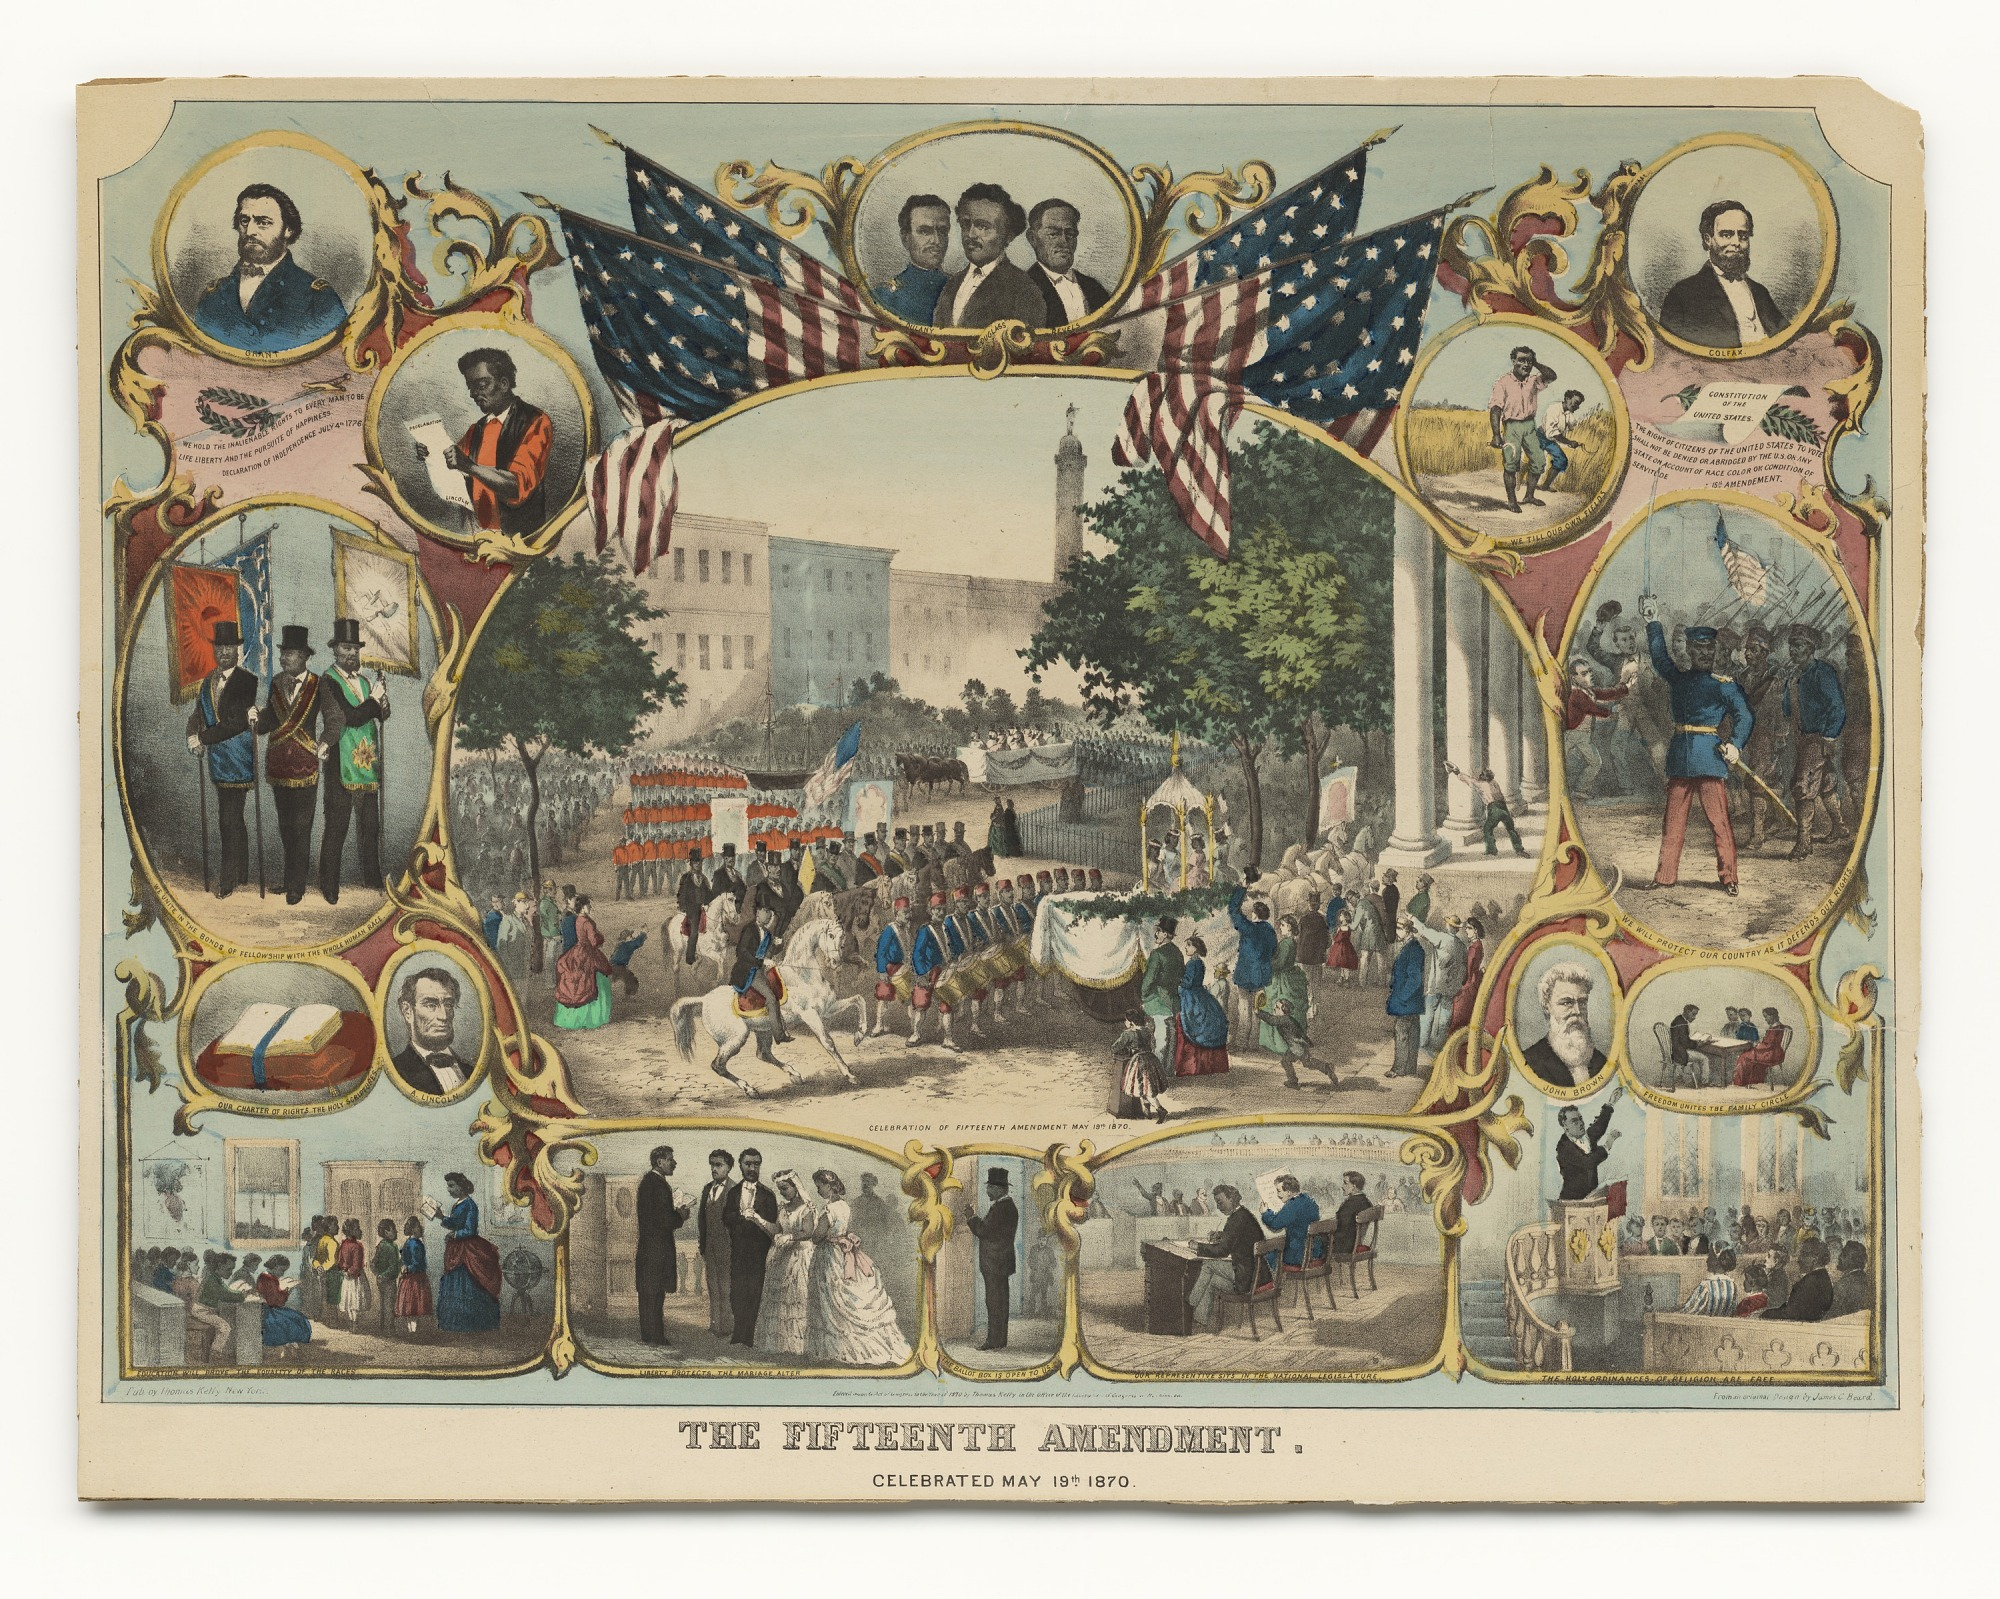 images for <I>The Fifteenth Amendment. Celebrated May 19th 1870</I>